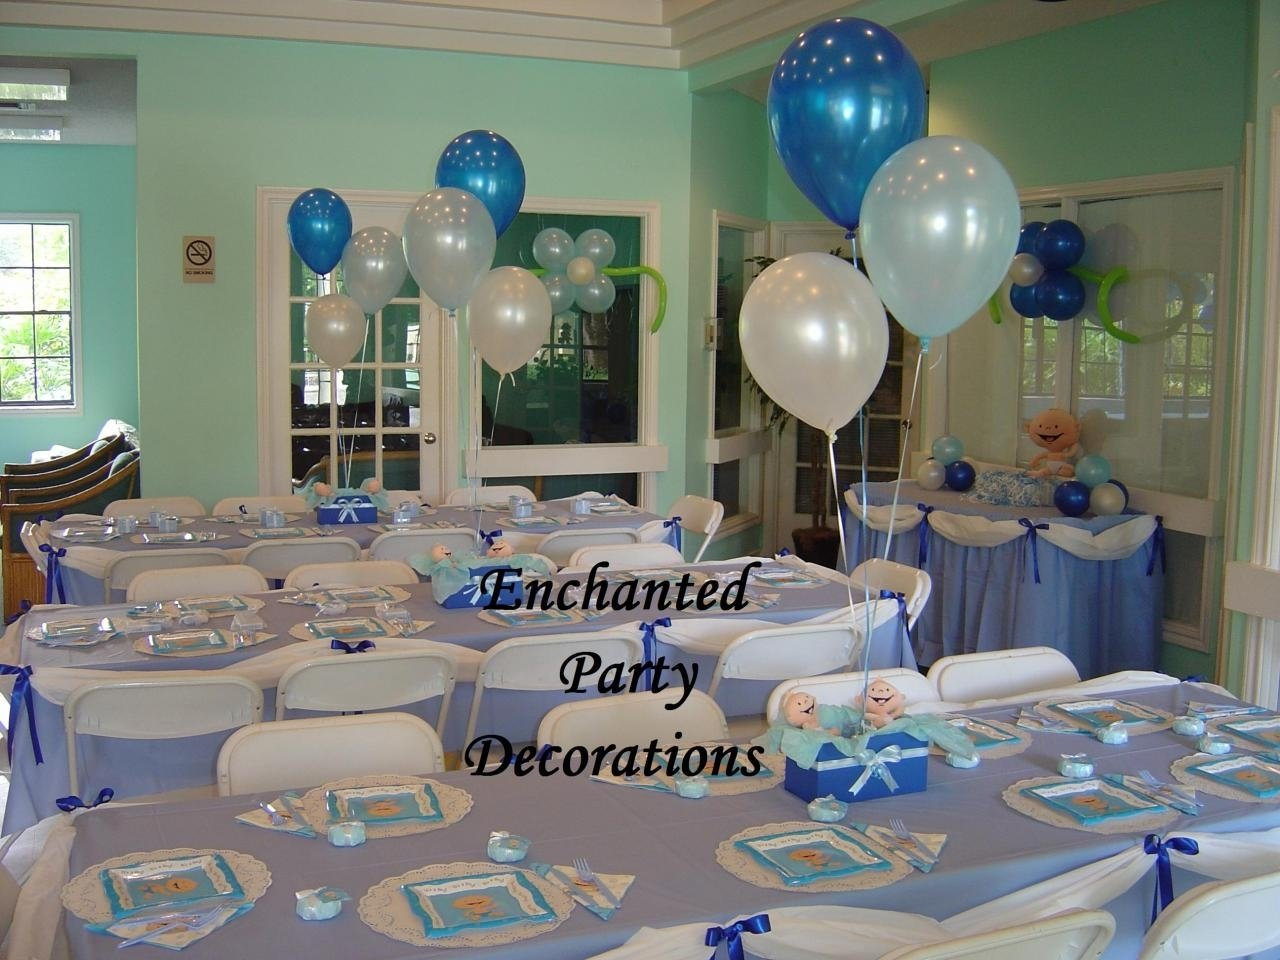 10 Elegant Baby Shower Decoration Ideas For Boys baby shower table decorations ideas omega center ideas for baby 3